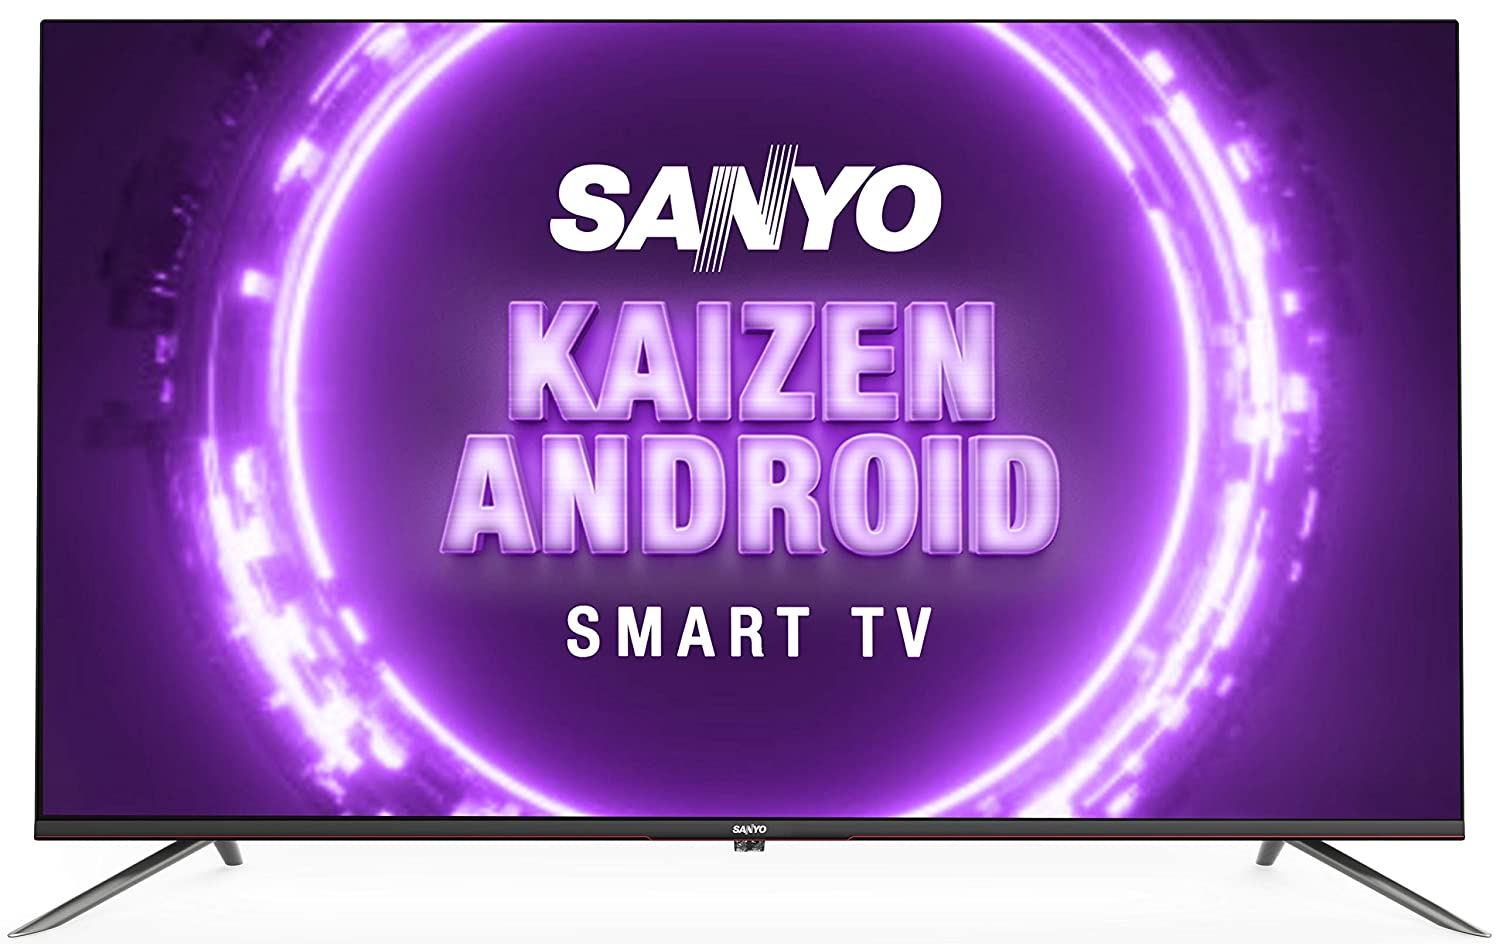 Sanyo XT-43A082U Best Smart TV